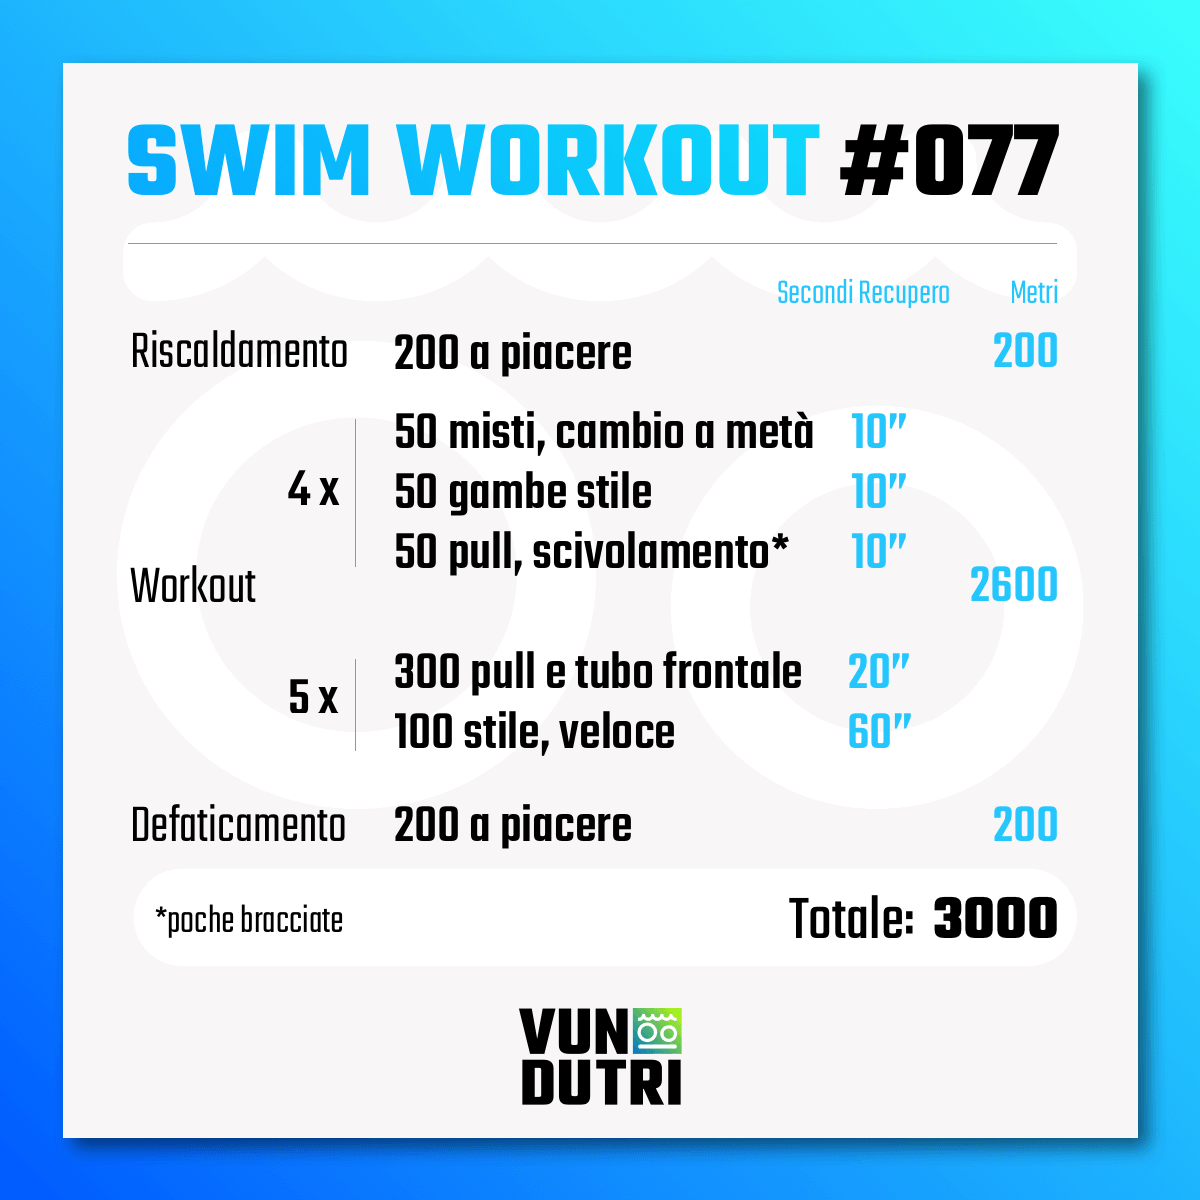 Swim workout 077